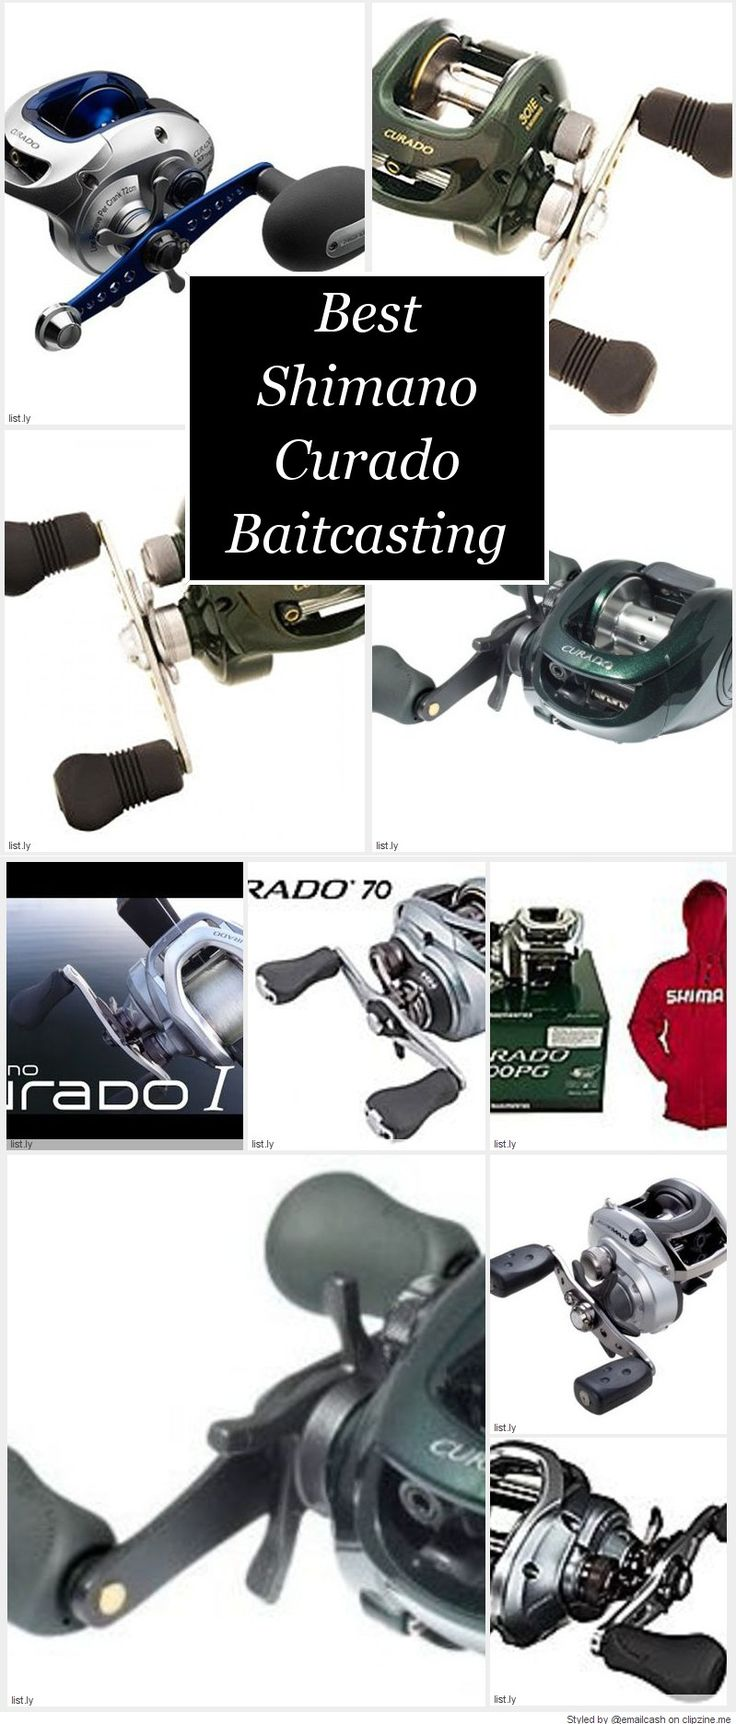 Are you looking for the best Shimano Curado baitcasting fishing reels? The Shimano Curado is tougher, stronger and more powerful than ever before and is the best baitcasting reel you will find. This Shimano baitcasting fishing reel is available in various sizes for those who love to fish, whether expert or amateur.